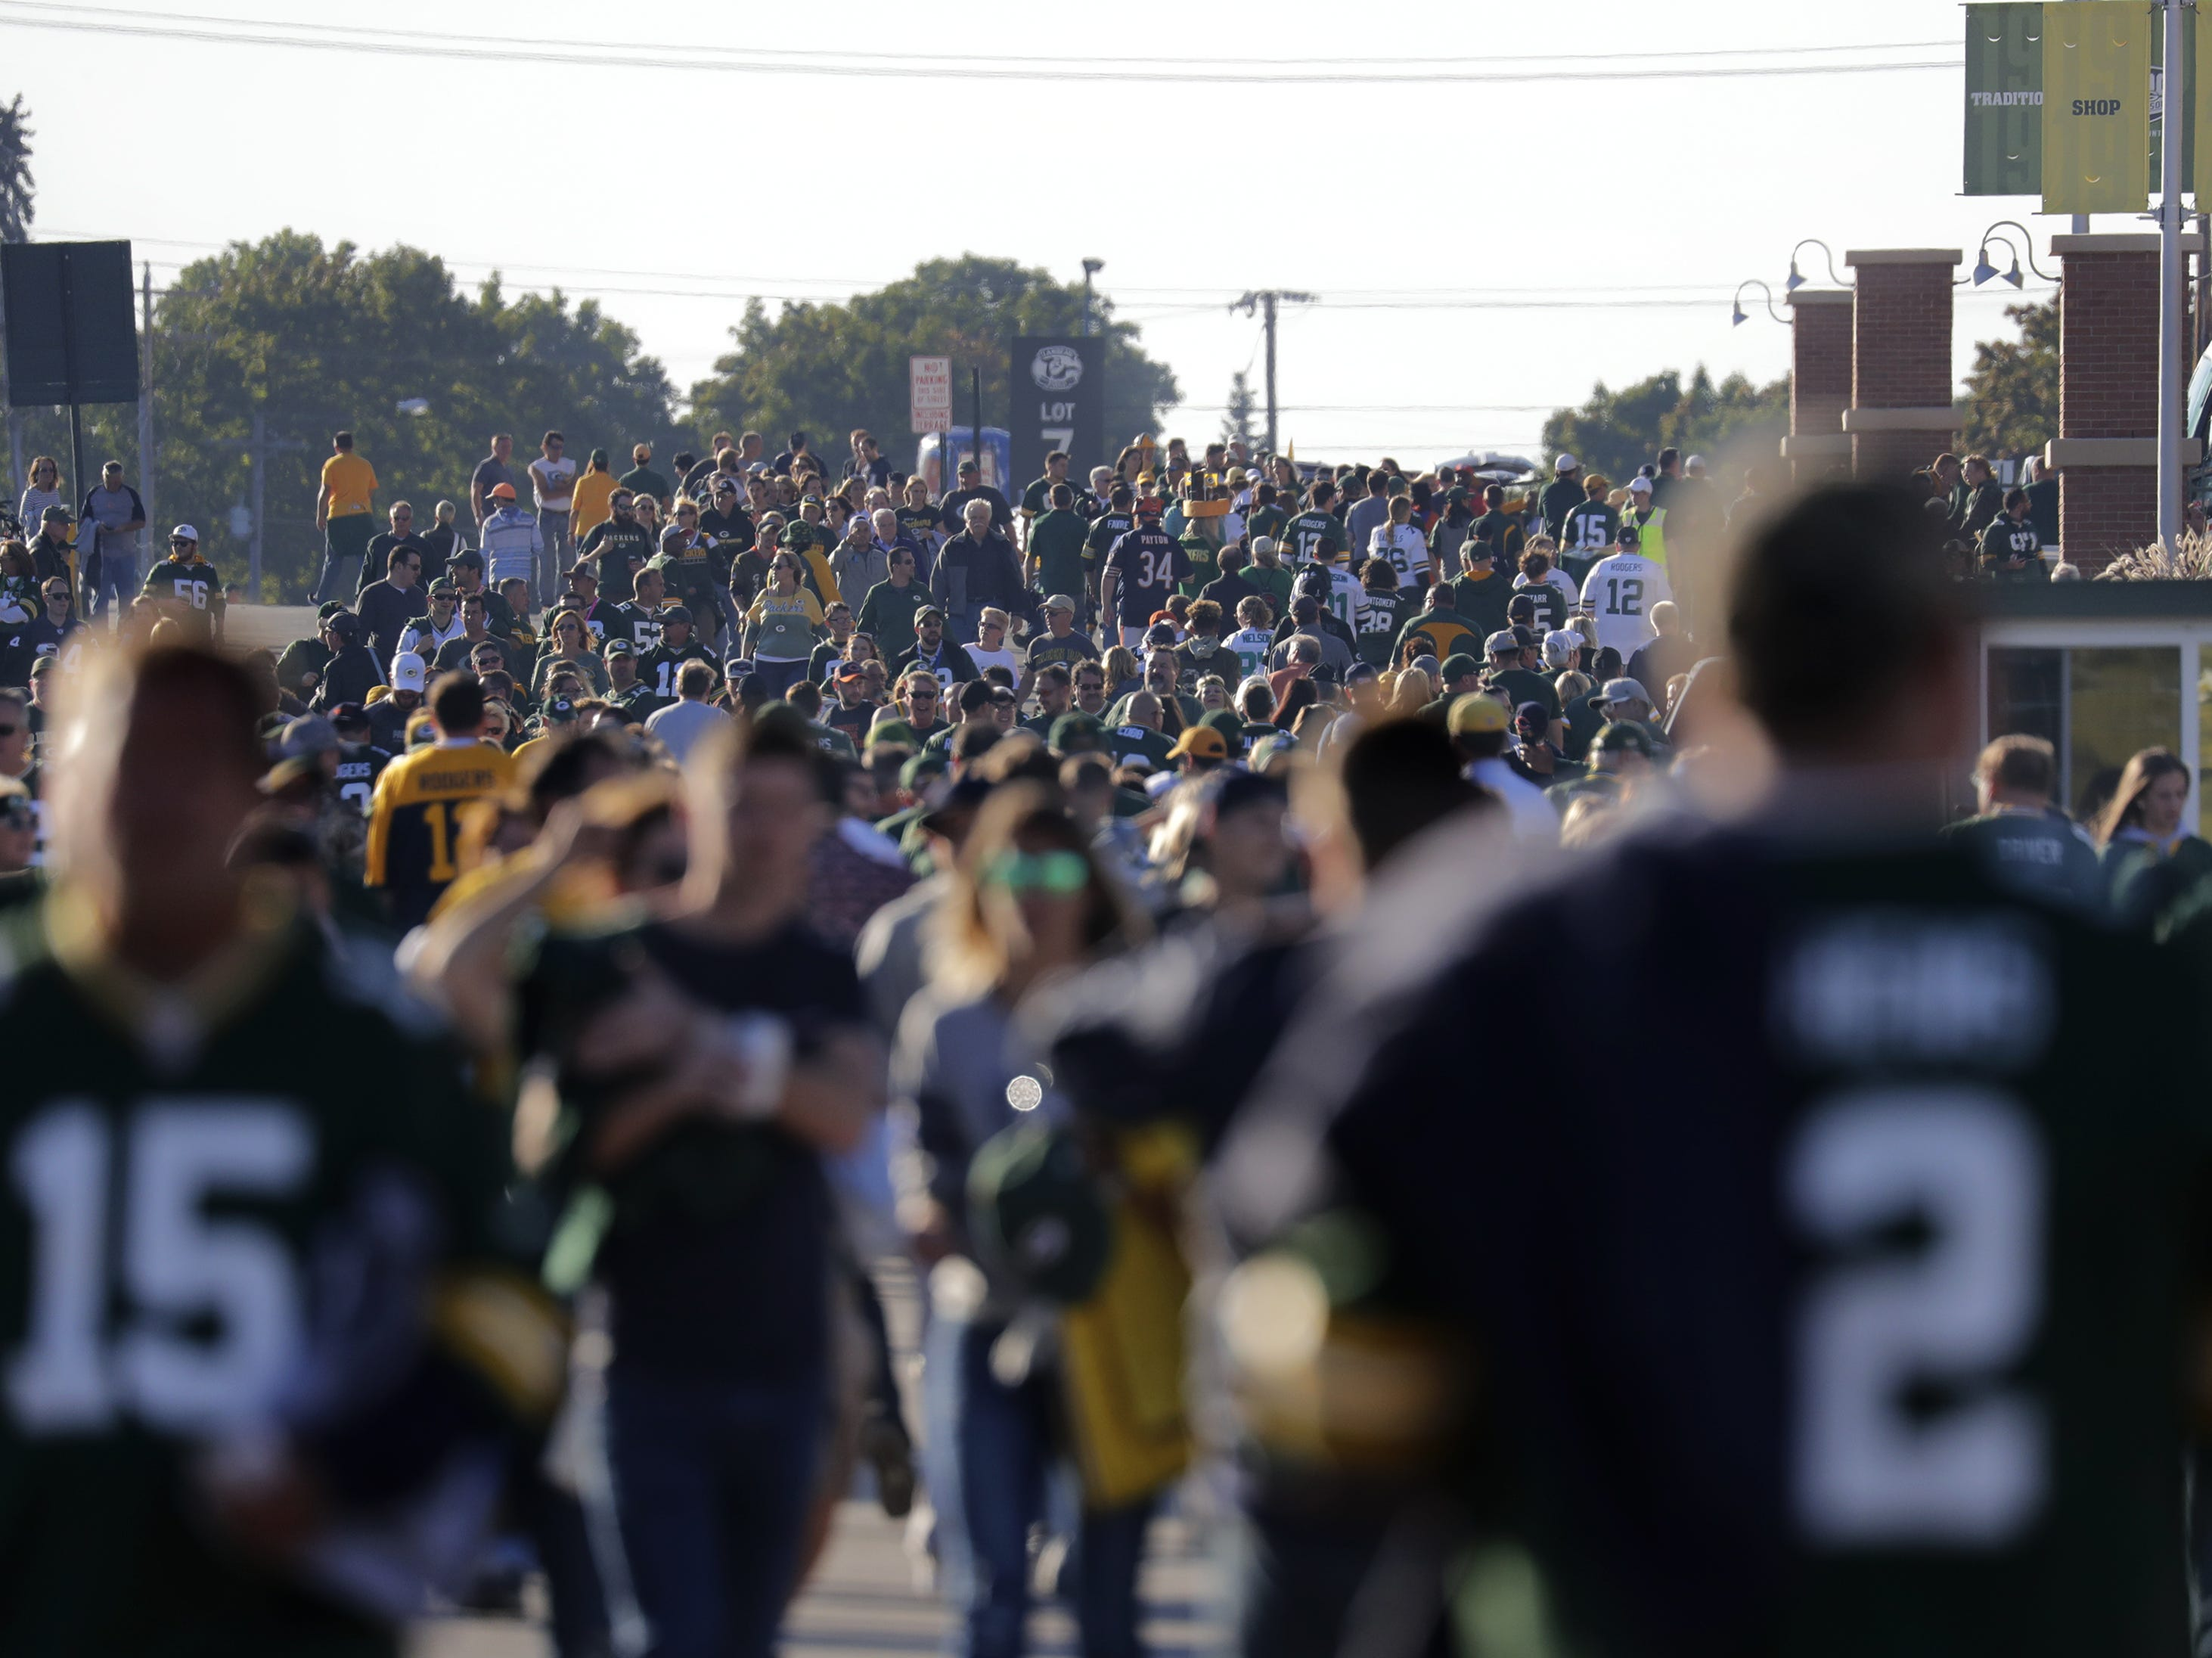 Fans walk the area around Lambeau Field before the Green Bay Packers play against the Chicago Bears Sunday, Sept. 9, 2018, at Lambeau Field in Green Bay, Wis.